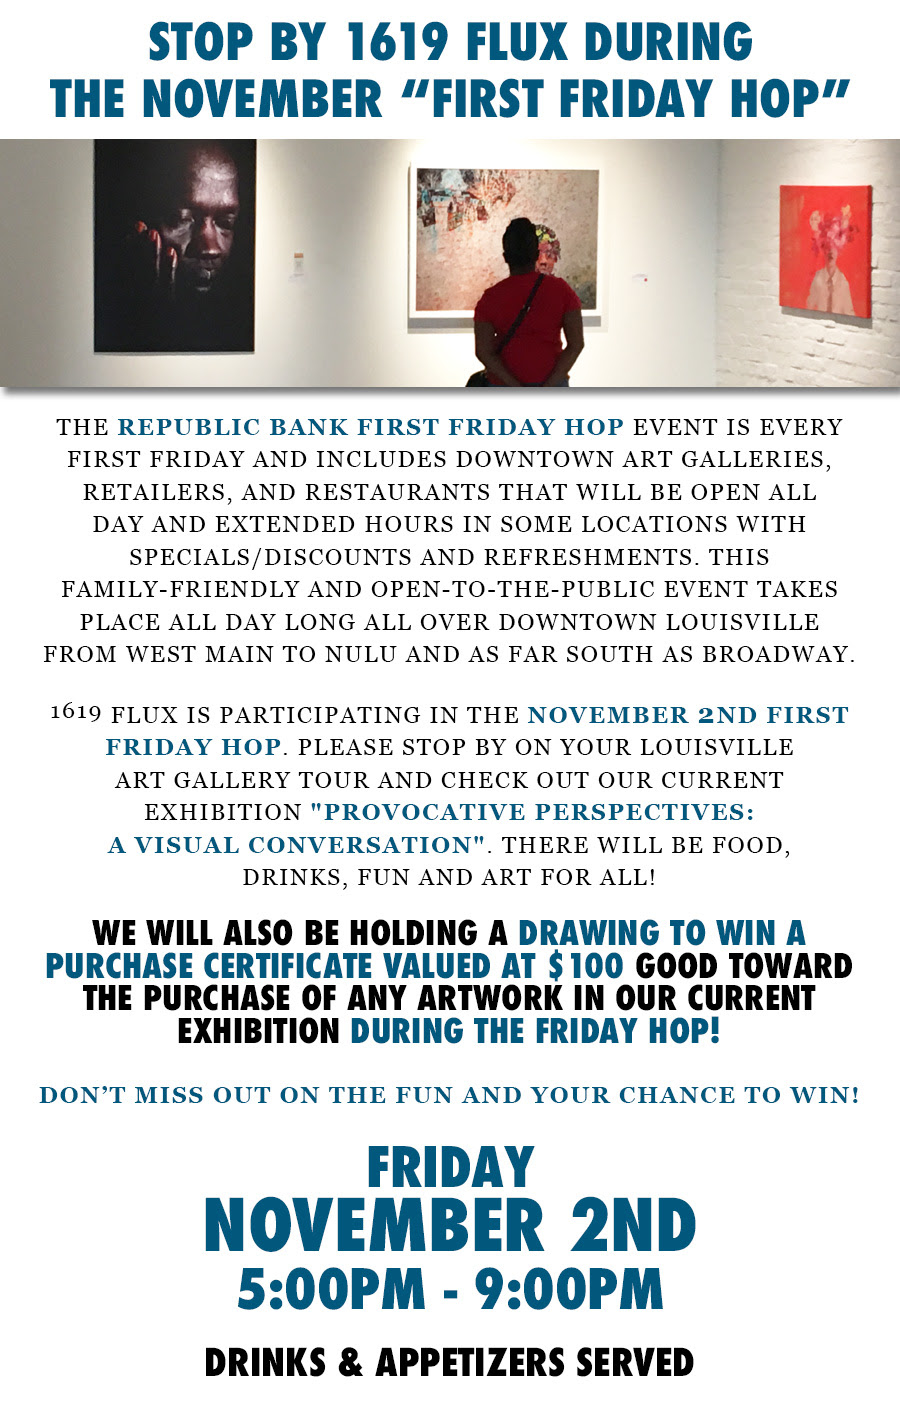 drawing to win art at 1619 flux on the republic bank first friday